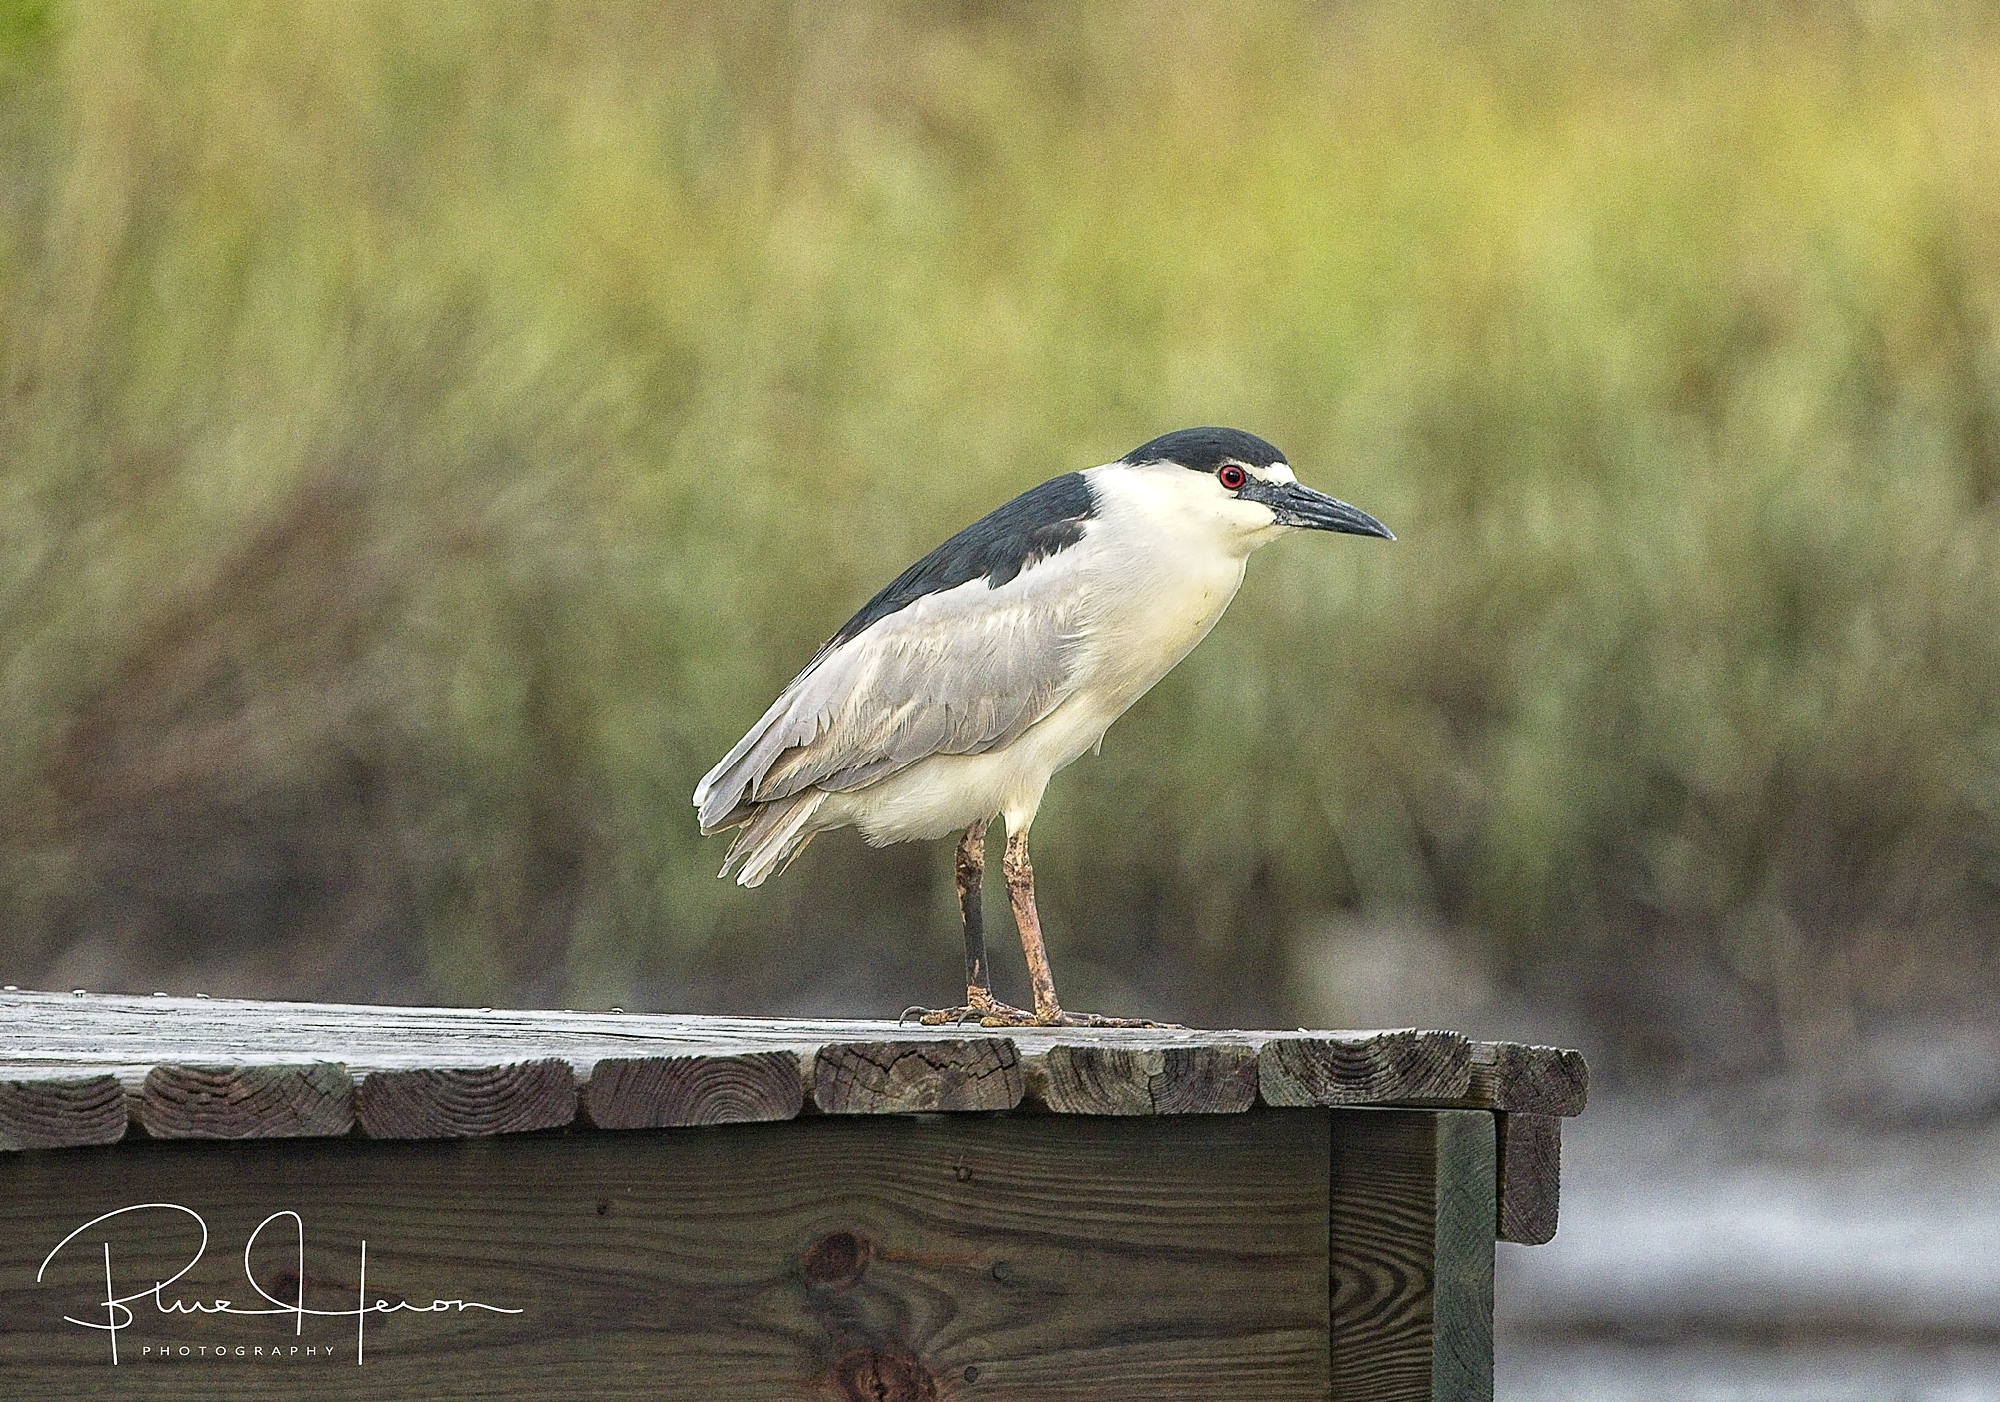 The Black-Crowned Night Heron resting on the lizard lounge. Note the bicolored beak with some yellow near the base on the lower beak.